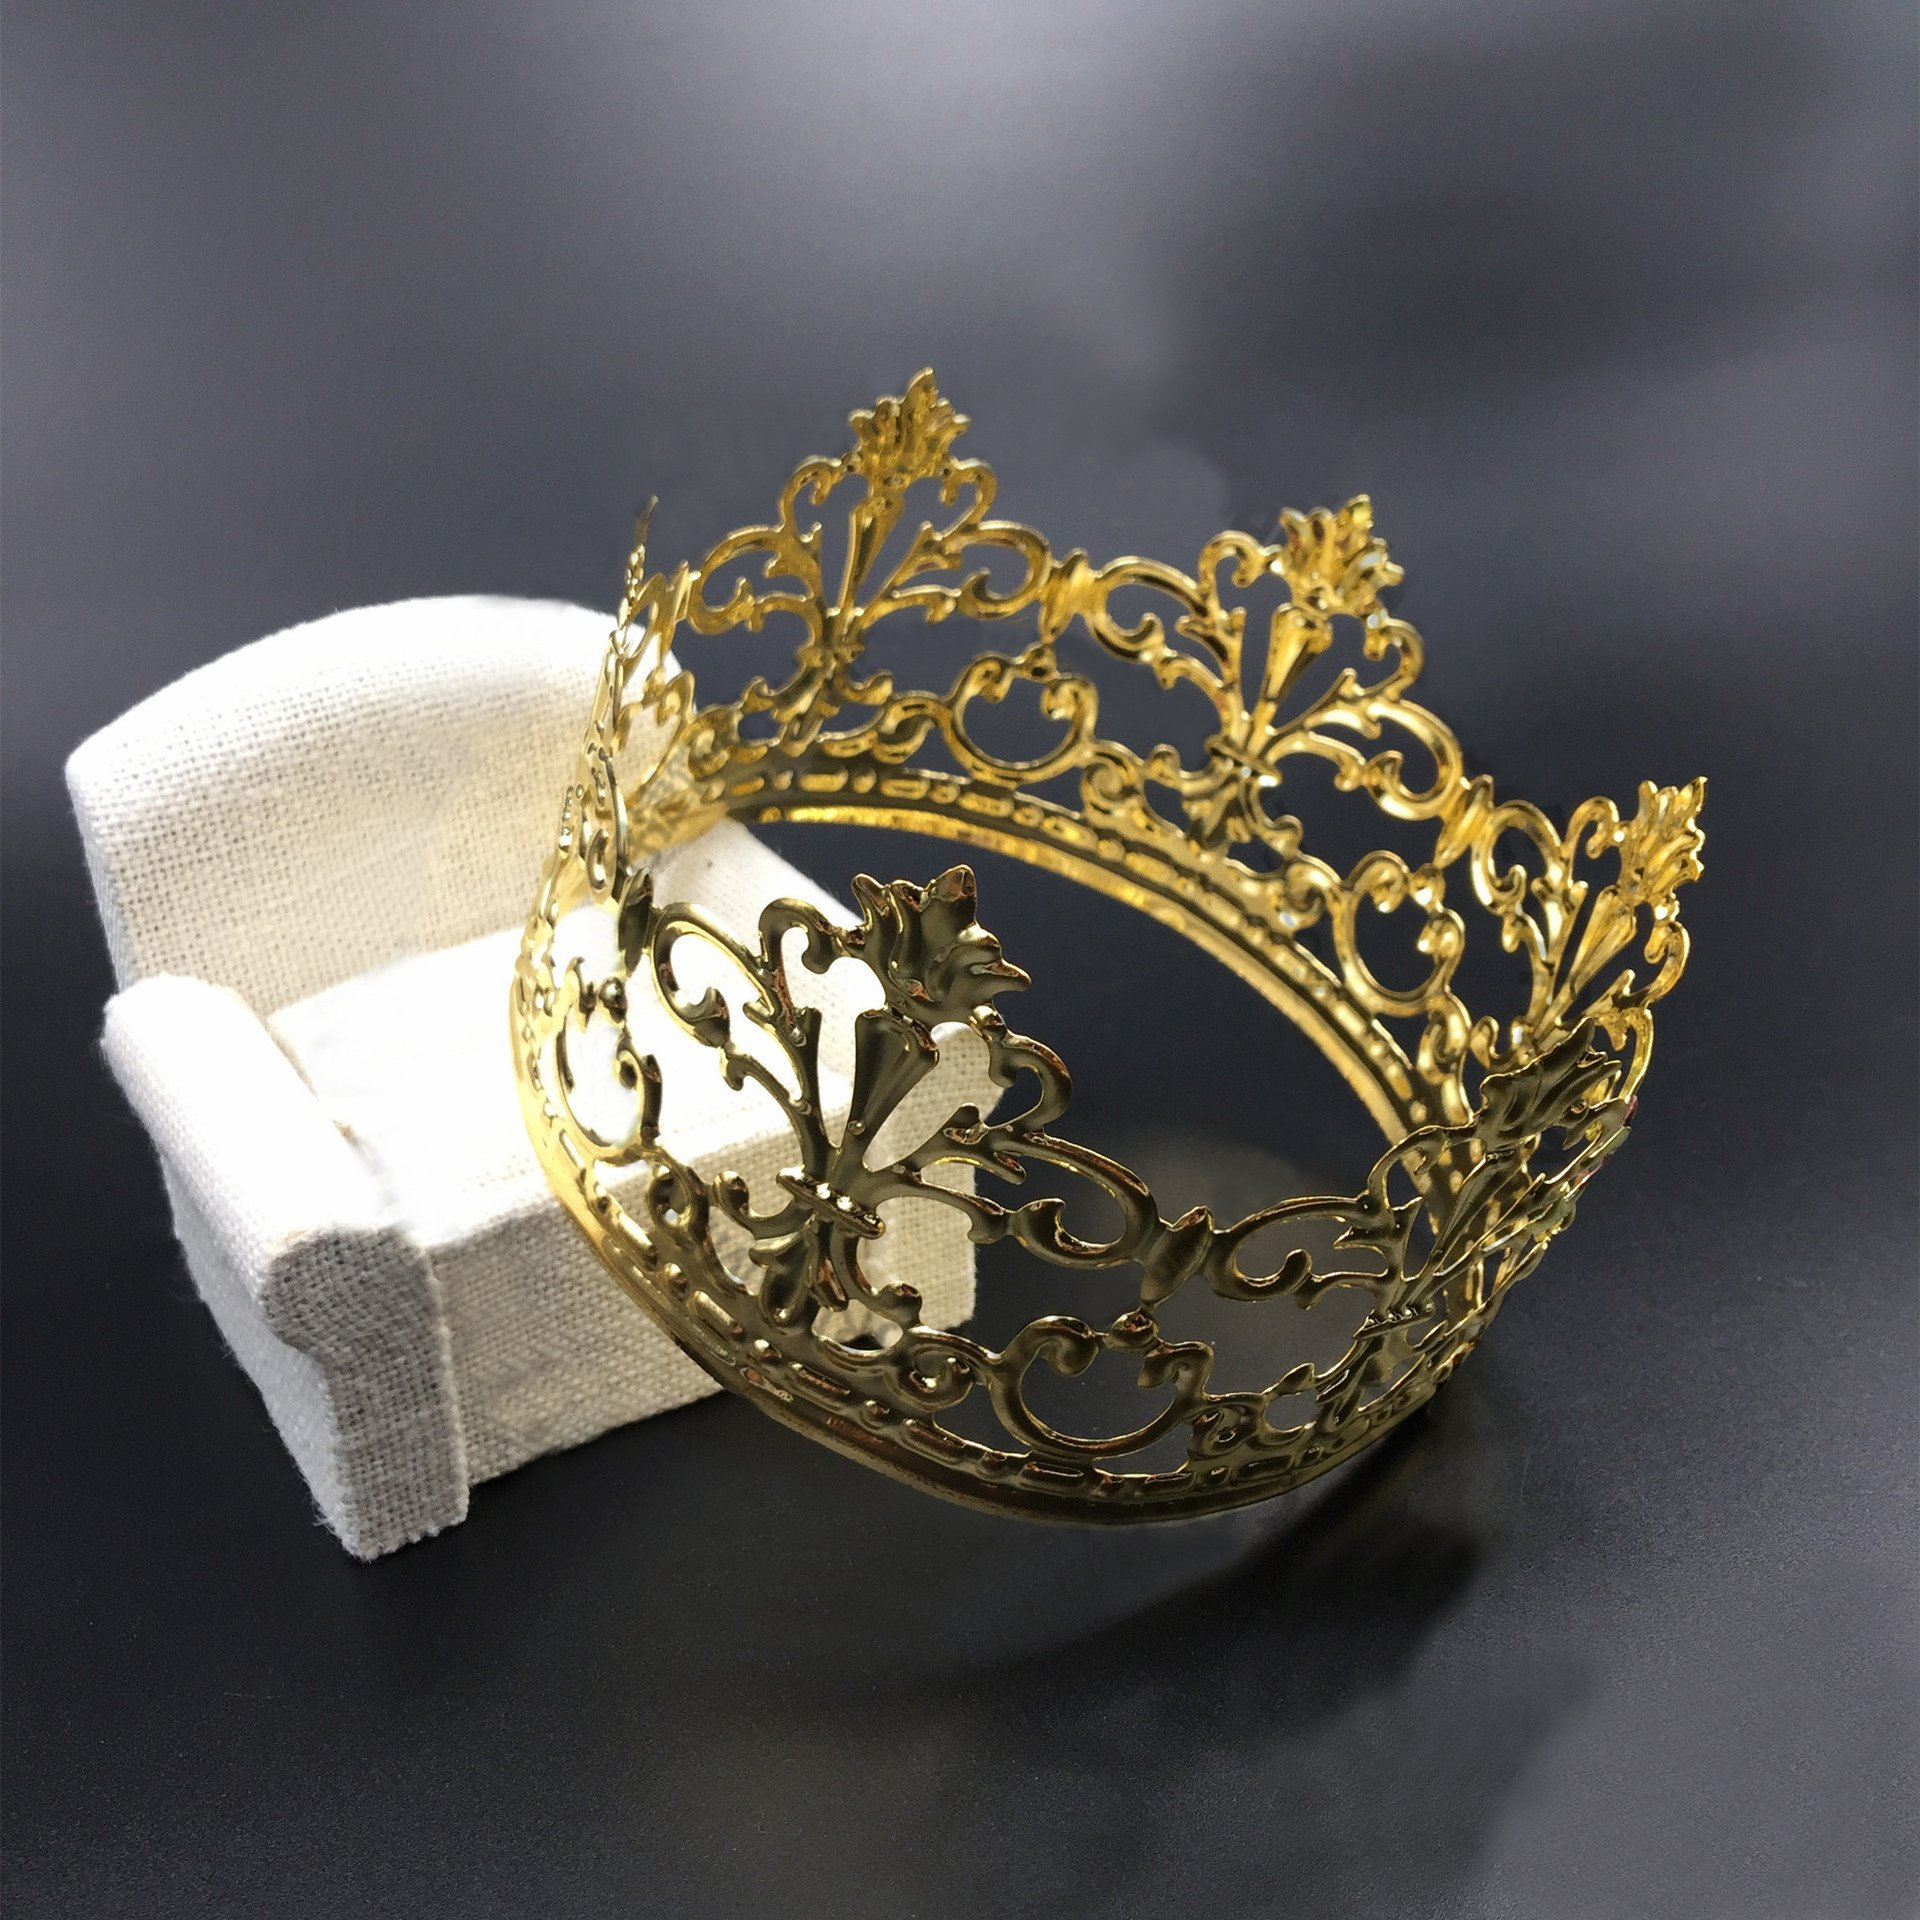 HYOUNINGF Gold Crown Cake Topper Elegant Cake Decoration For King, Queen, Prince And Princess Themed Parties, Royal Birthday Cake Decoration by HYOUNINGF (Image #2)